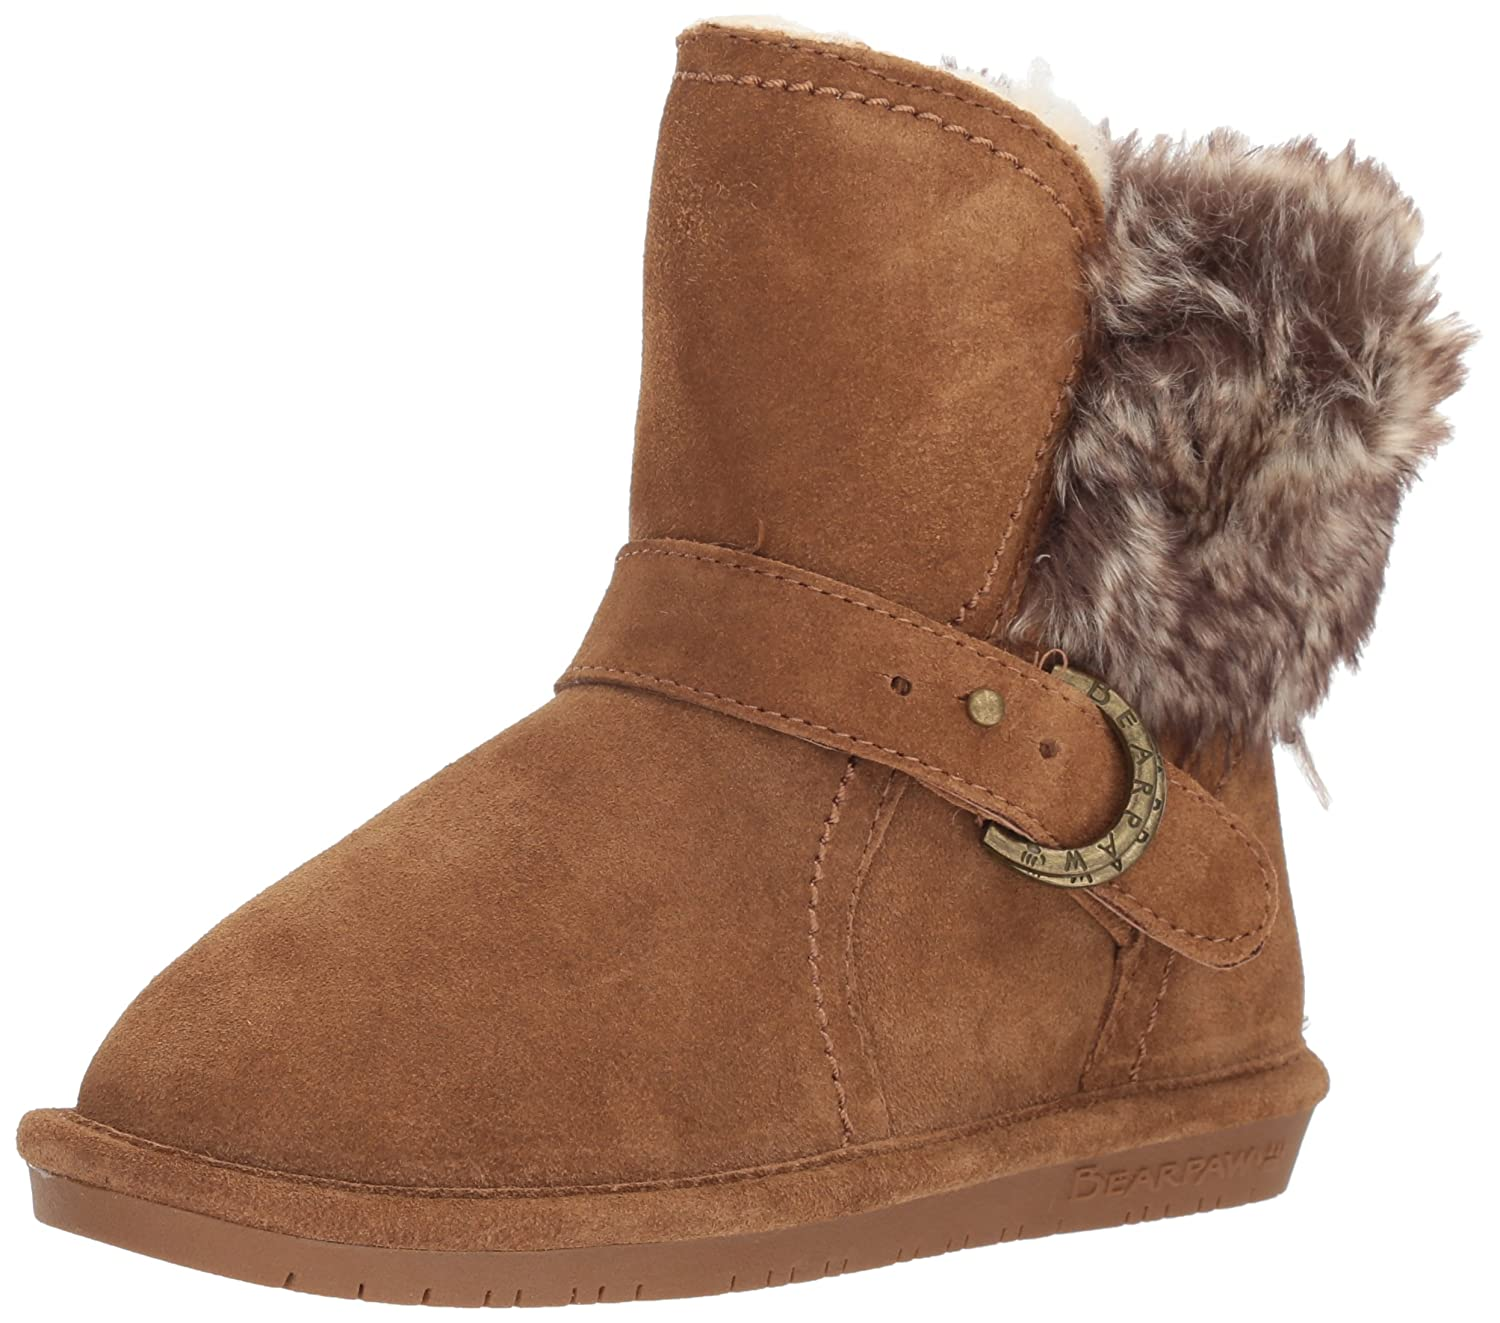 BEARPAW Kids' Koko Youth-K Koko Youth - K